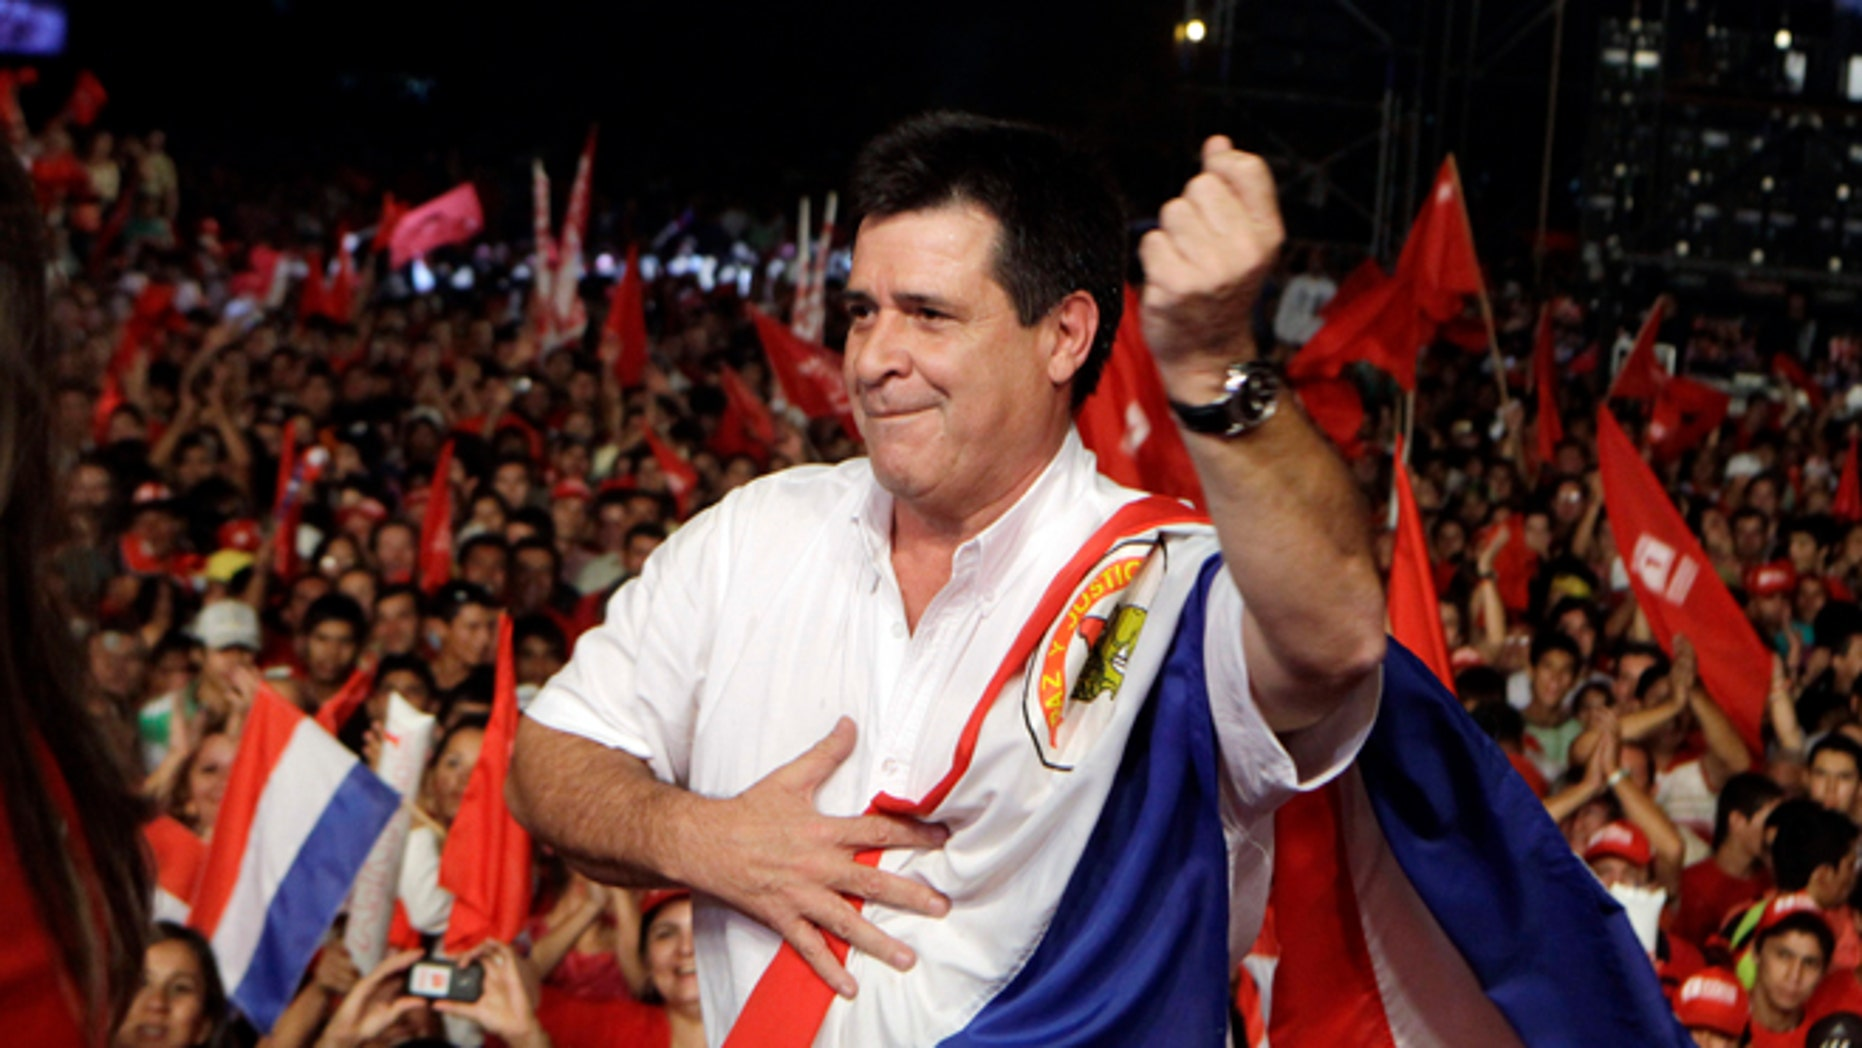 Horacio Cartes, presidential candidate of Colorado Party, dances during a campaign rally in Capiata, Paraguay, Friday, April 5, 2013. Paraguay will hold presidential elections on April 21. (AP Photo/Jorge Saenz)